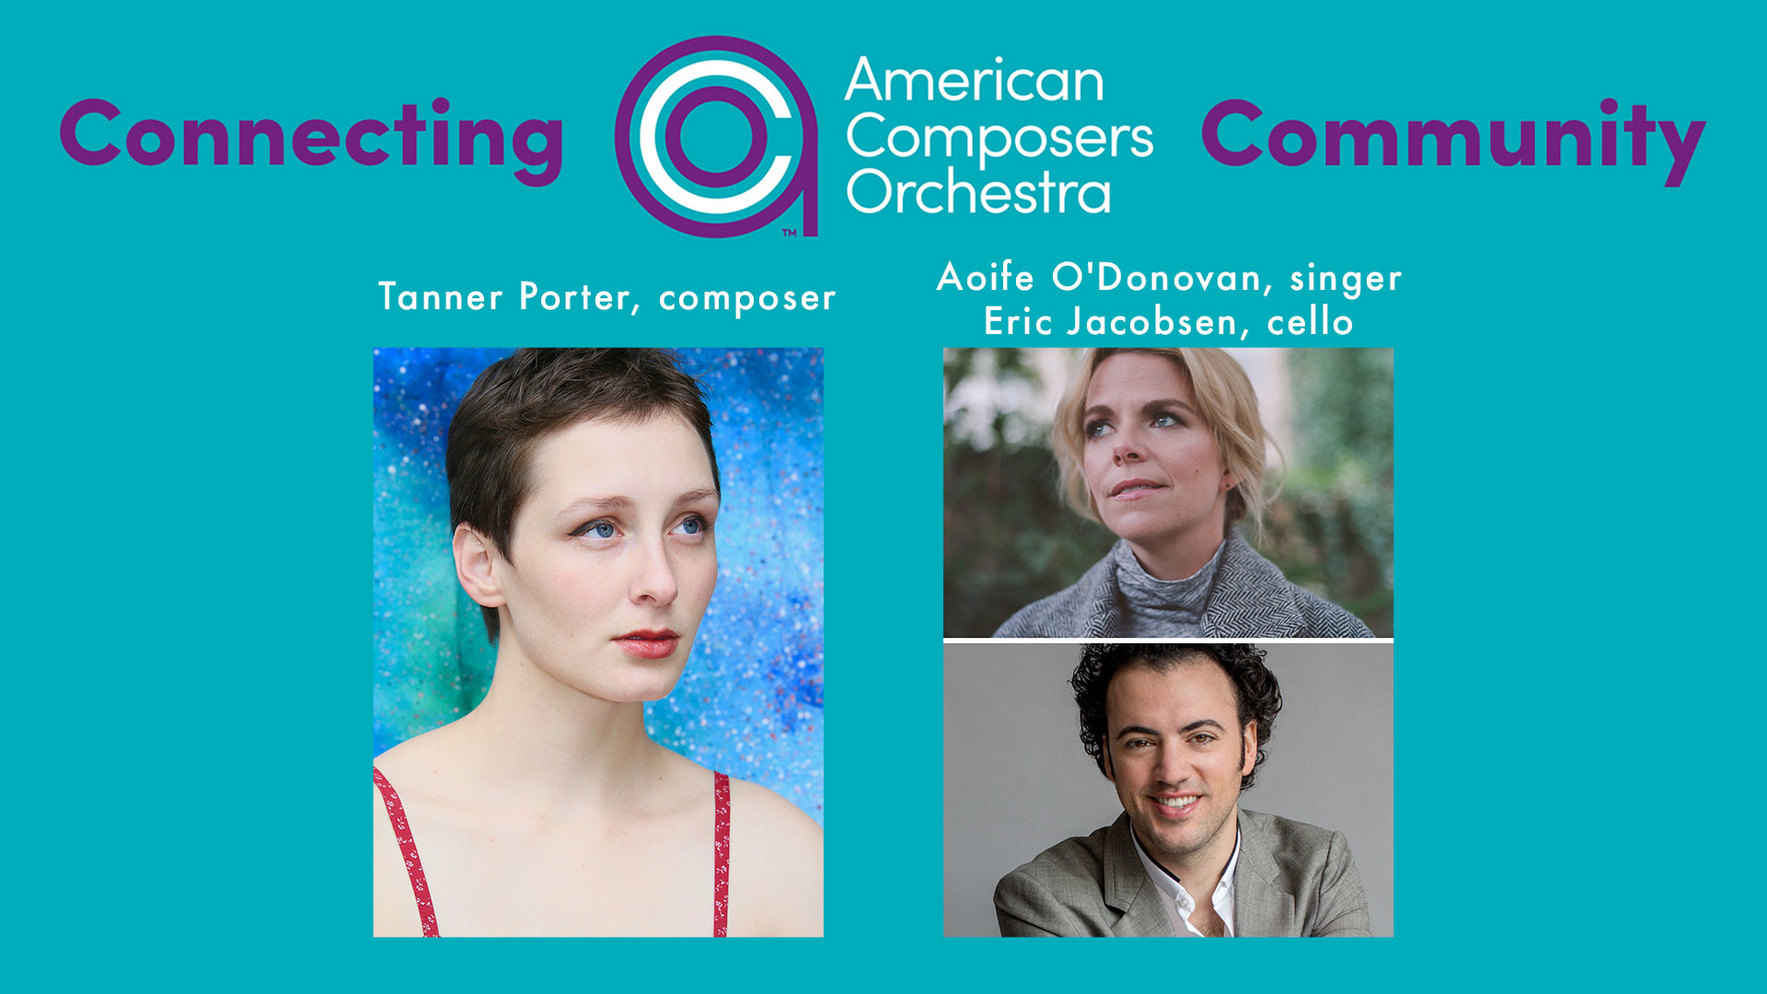 Connecting ACO Community Volume III - World premiere of Tanner Porter's new work for cellist, Eric Jacobsen and vocalist Aoife O'Donovan image